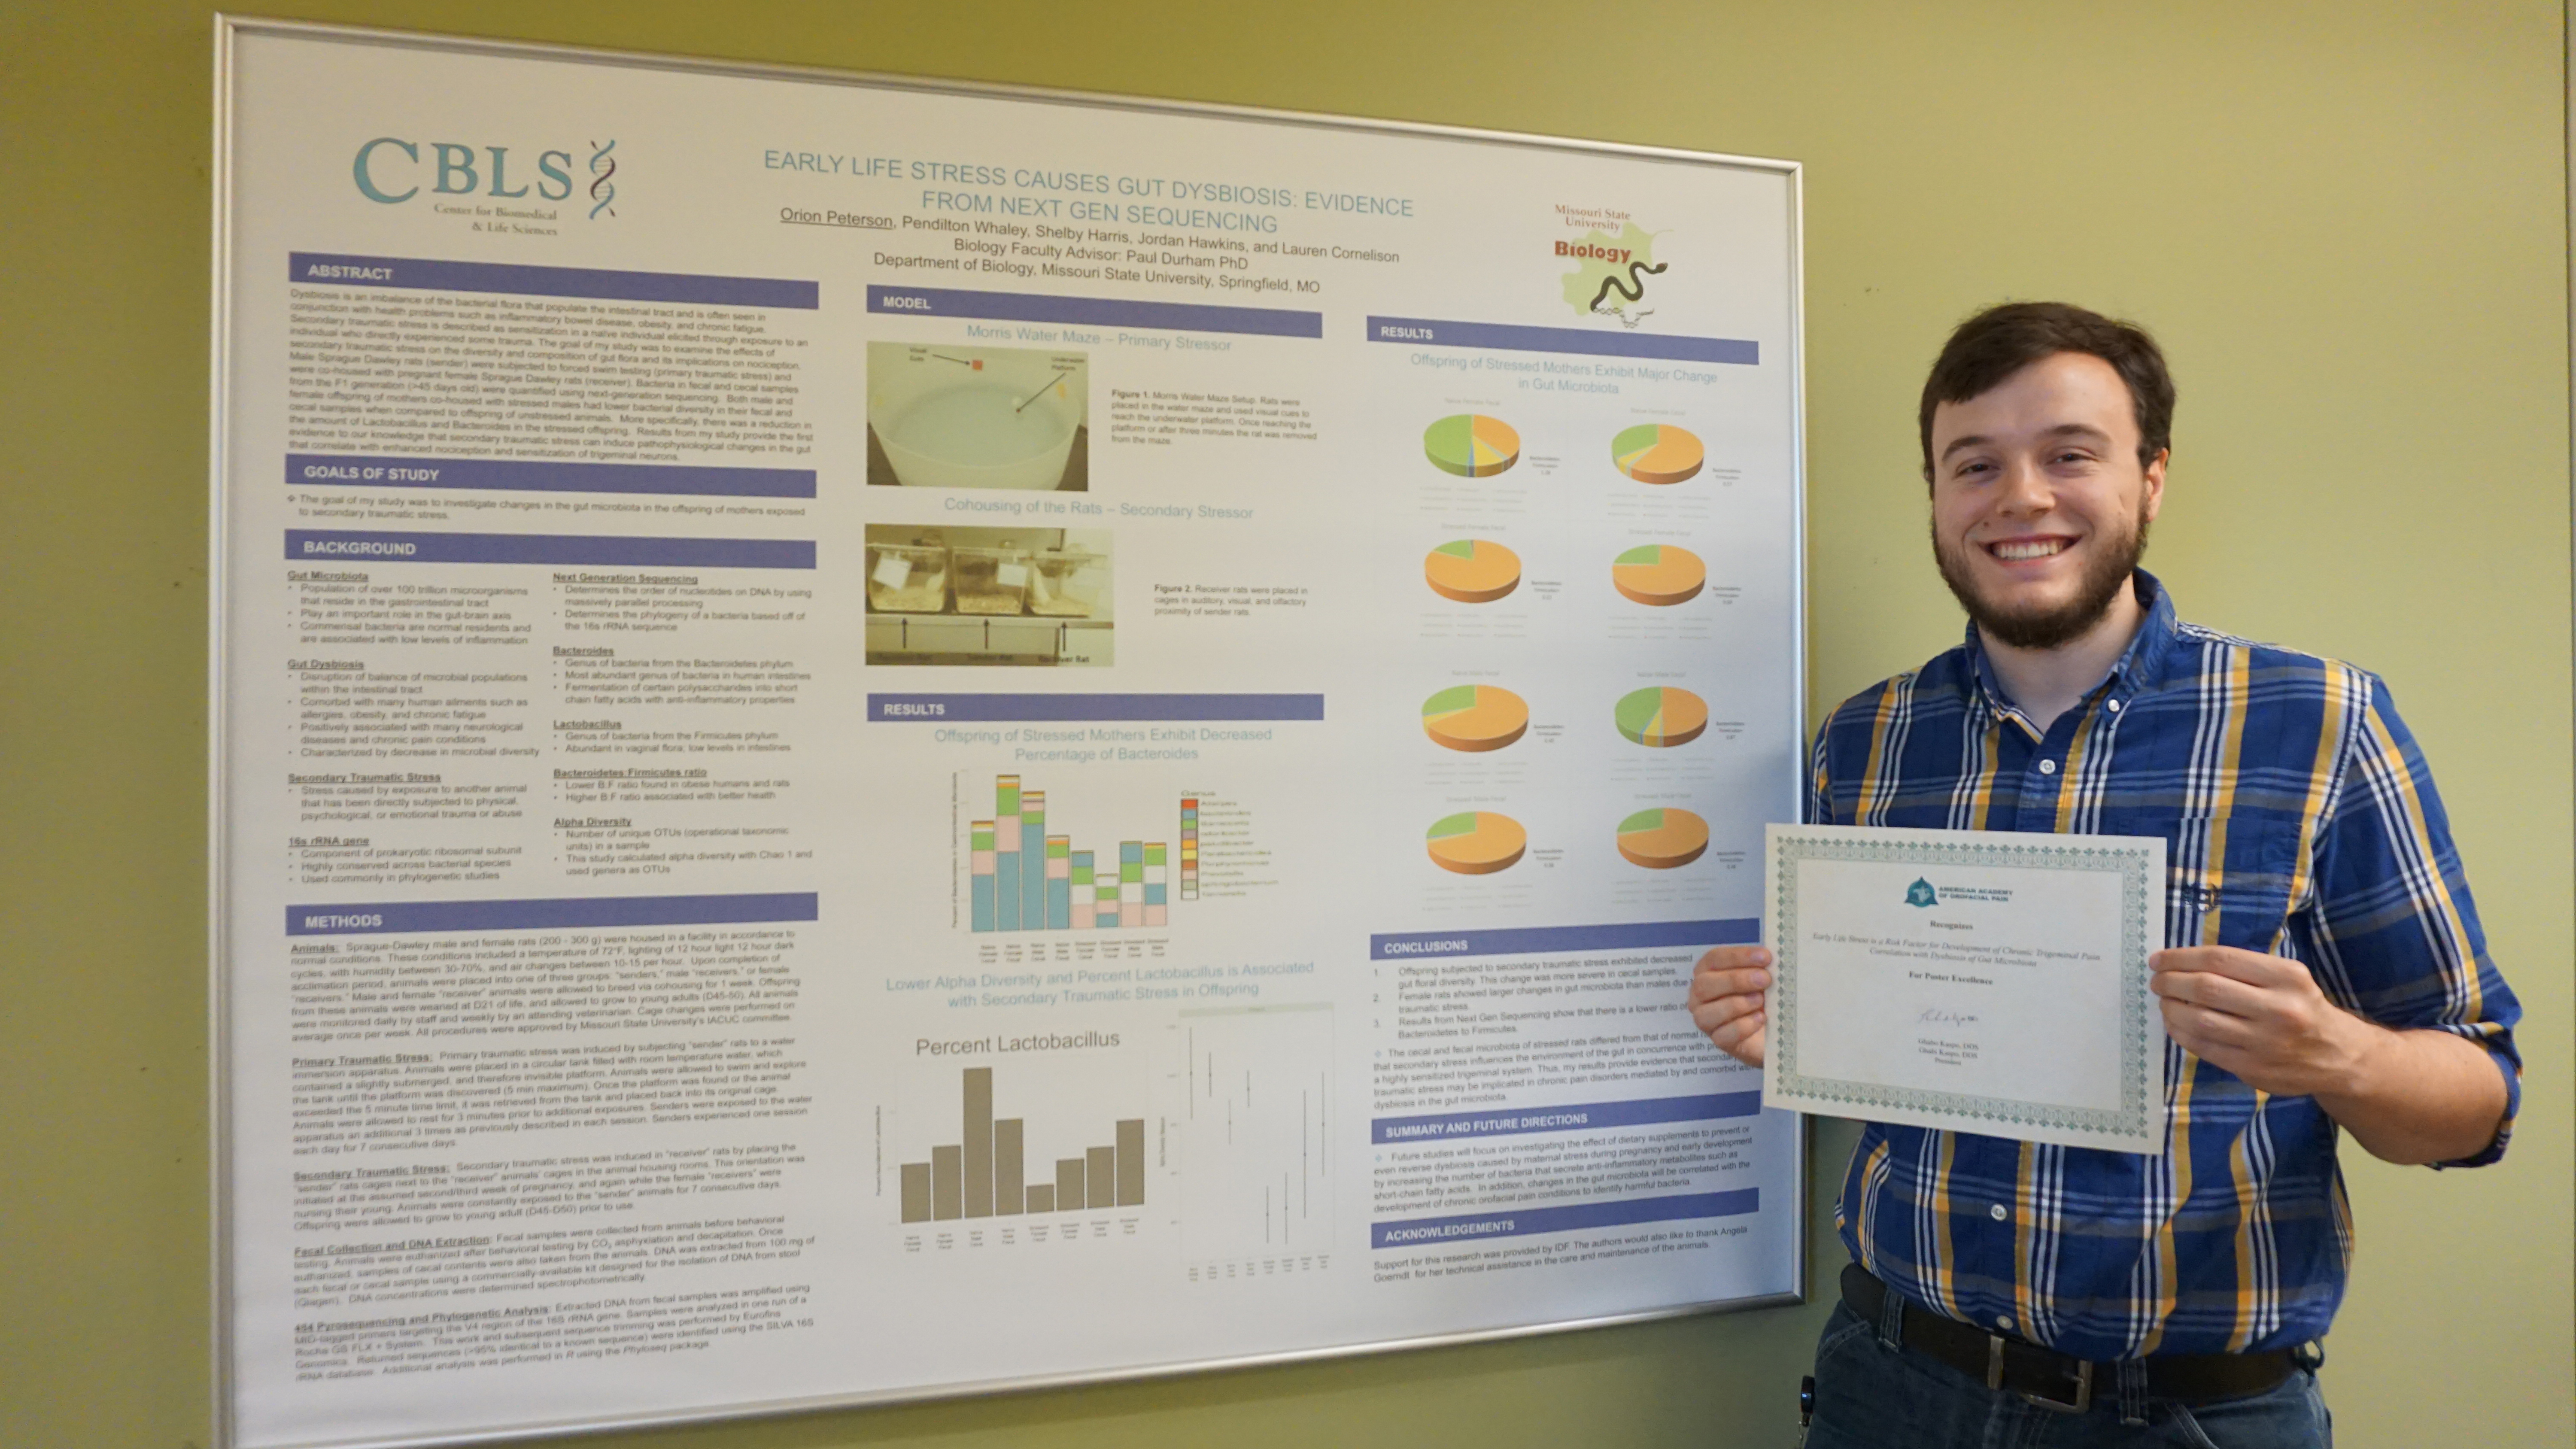 Orion Peterson stands with his award winning presentation.